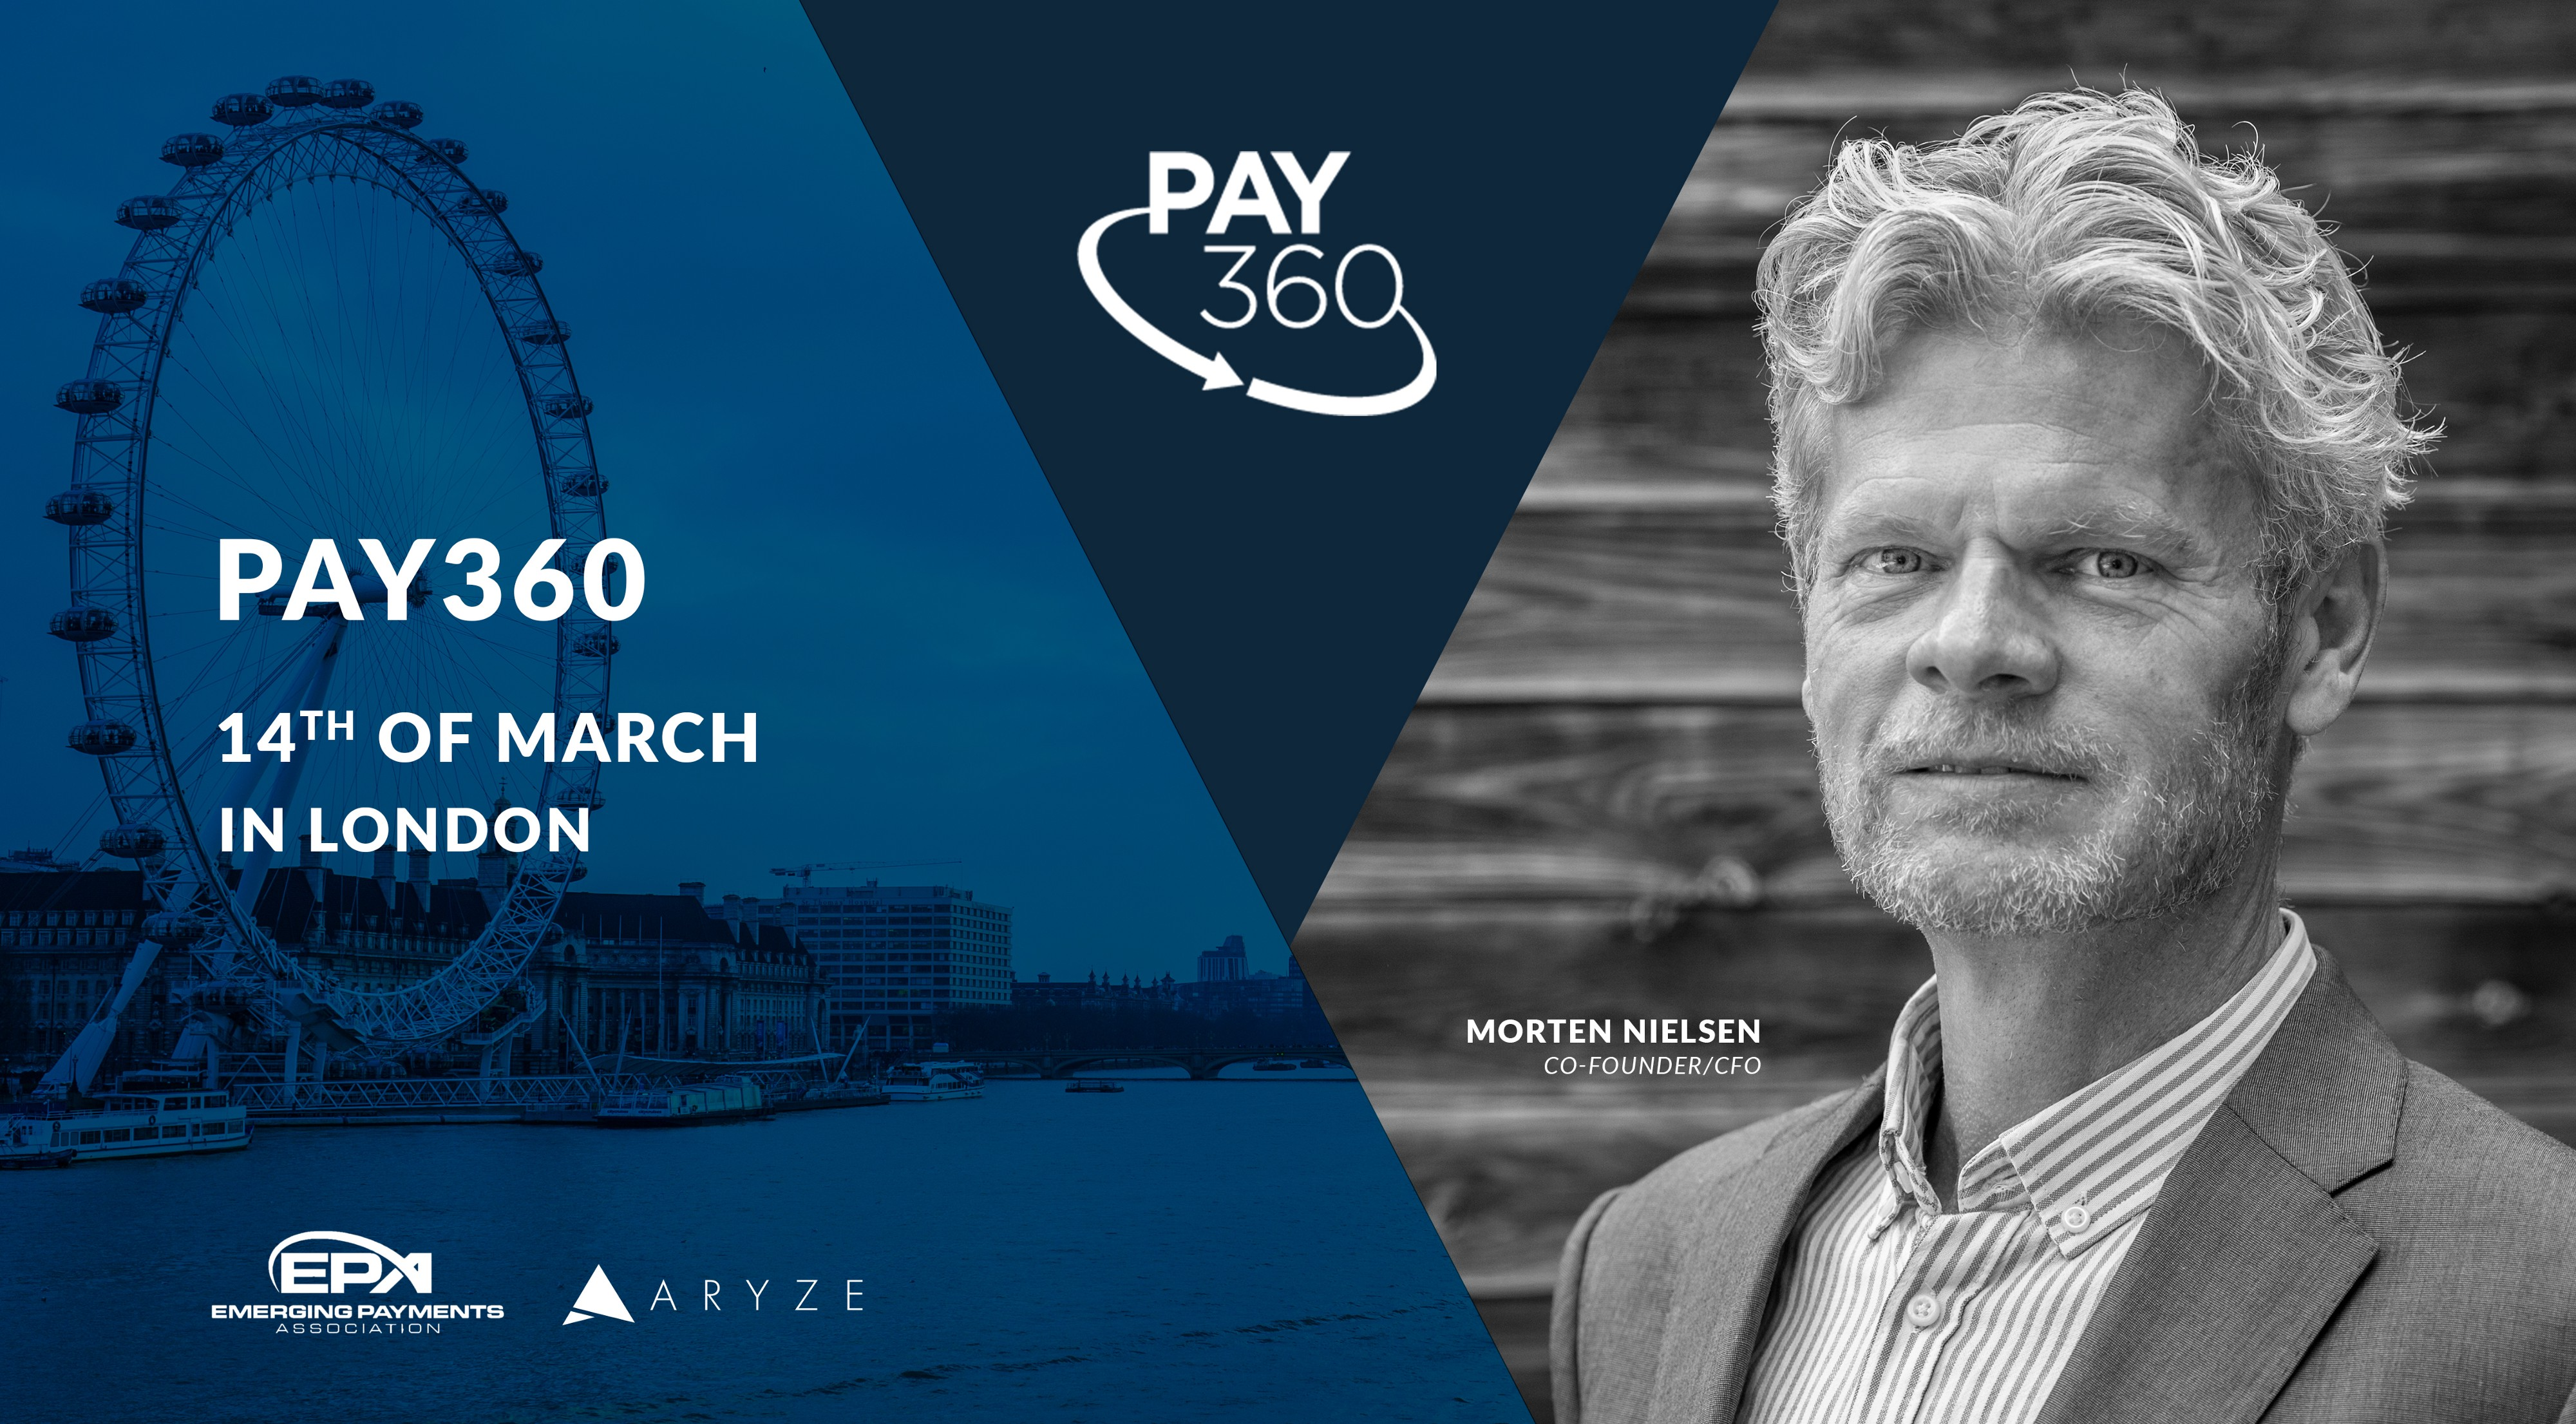 PAY360 conference in London to feature Morten Nielsen of ARYZE